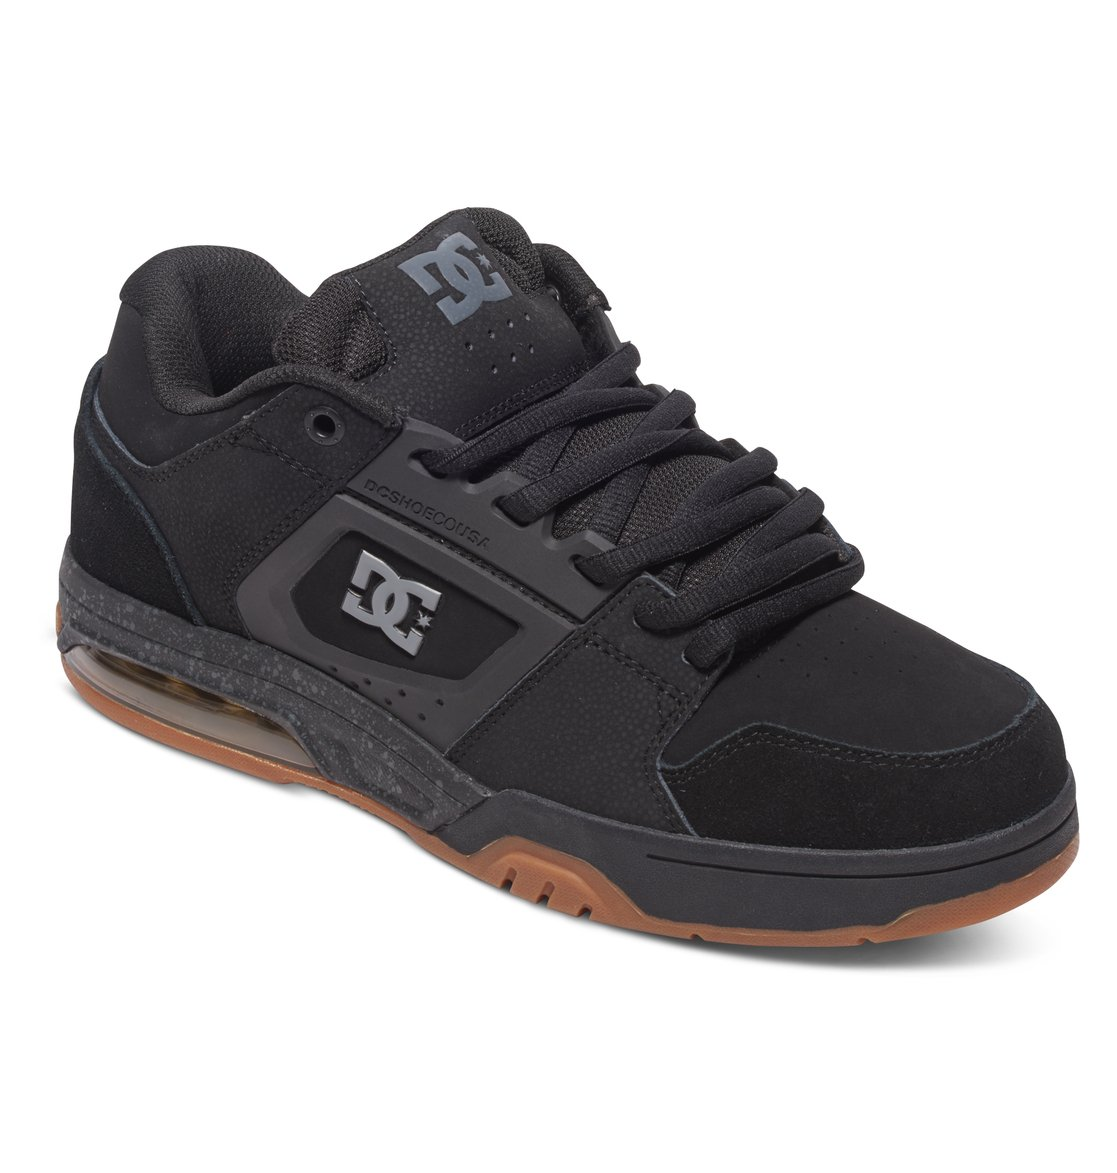 DC have been a leader in skate shoes and apparel since , when DC was founded by Ken Block and Damon Way. DC shoes are a line of some of the most technical and deluxe skate shoes available.